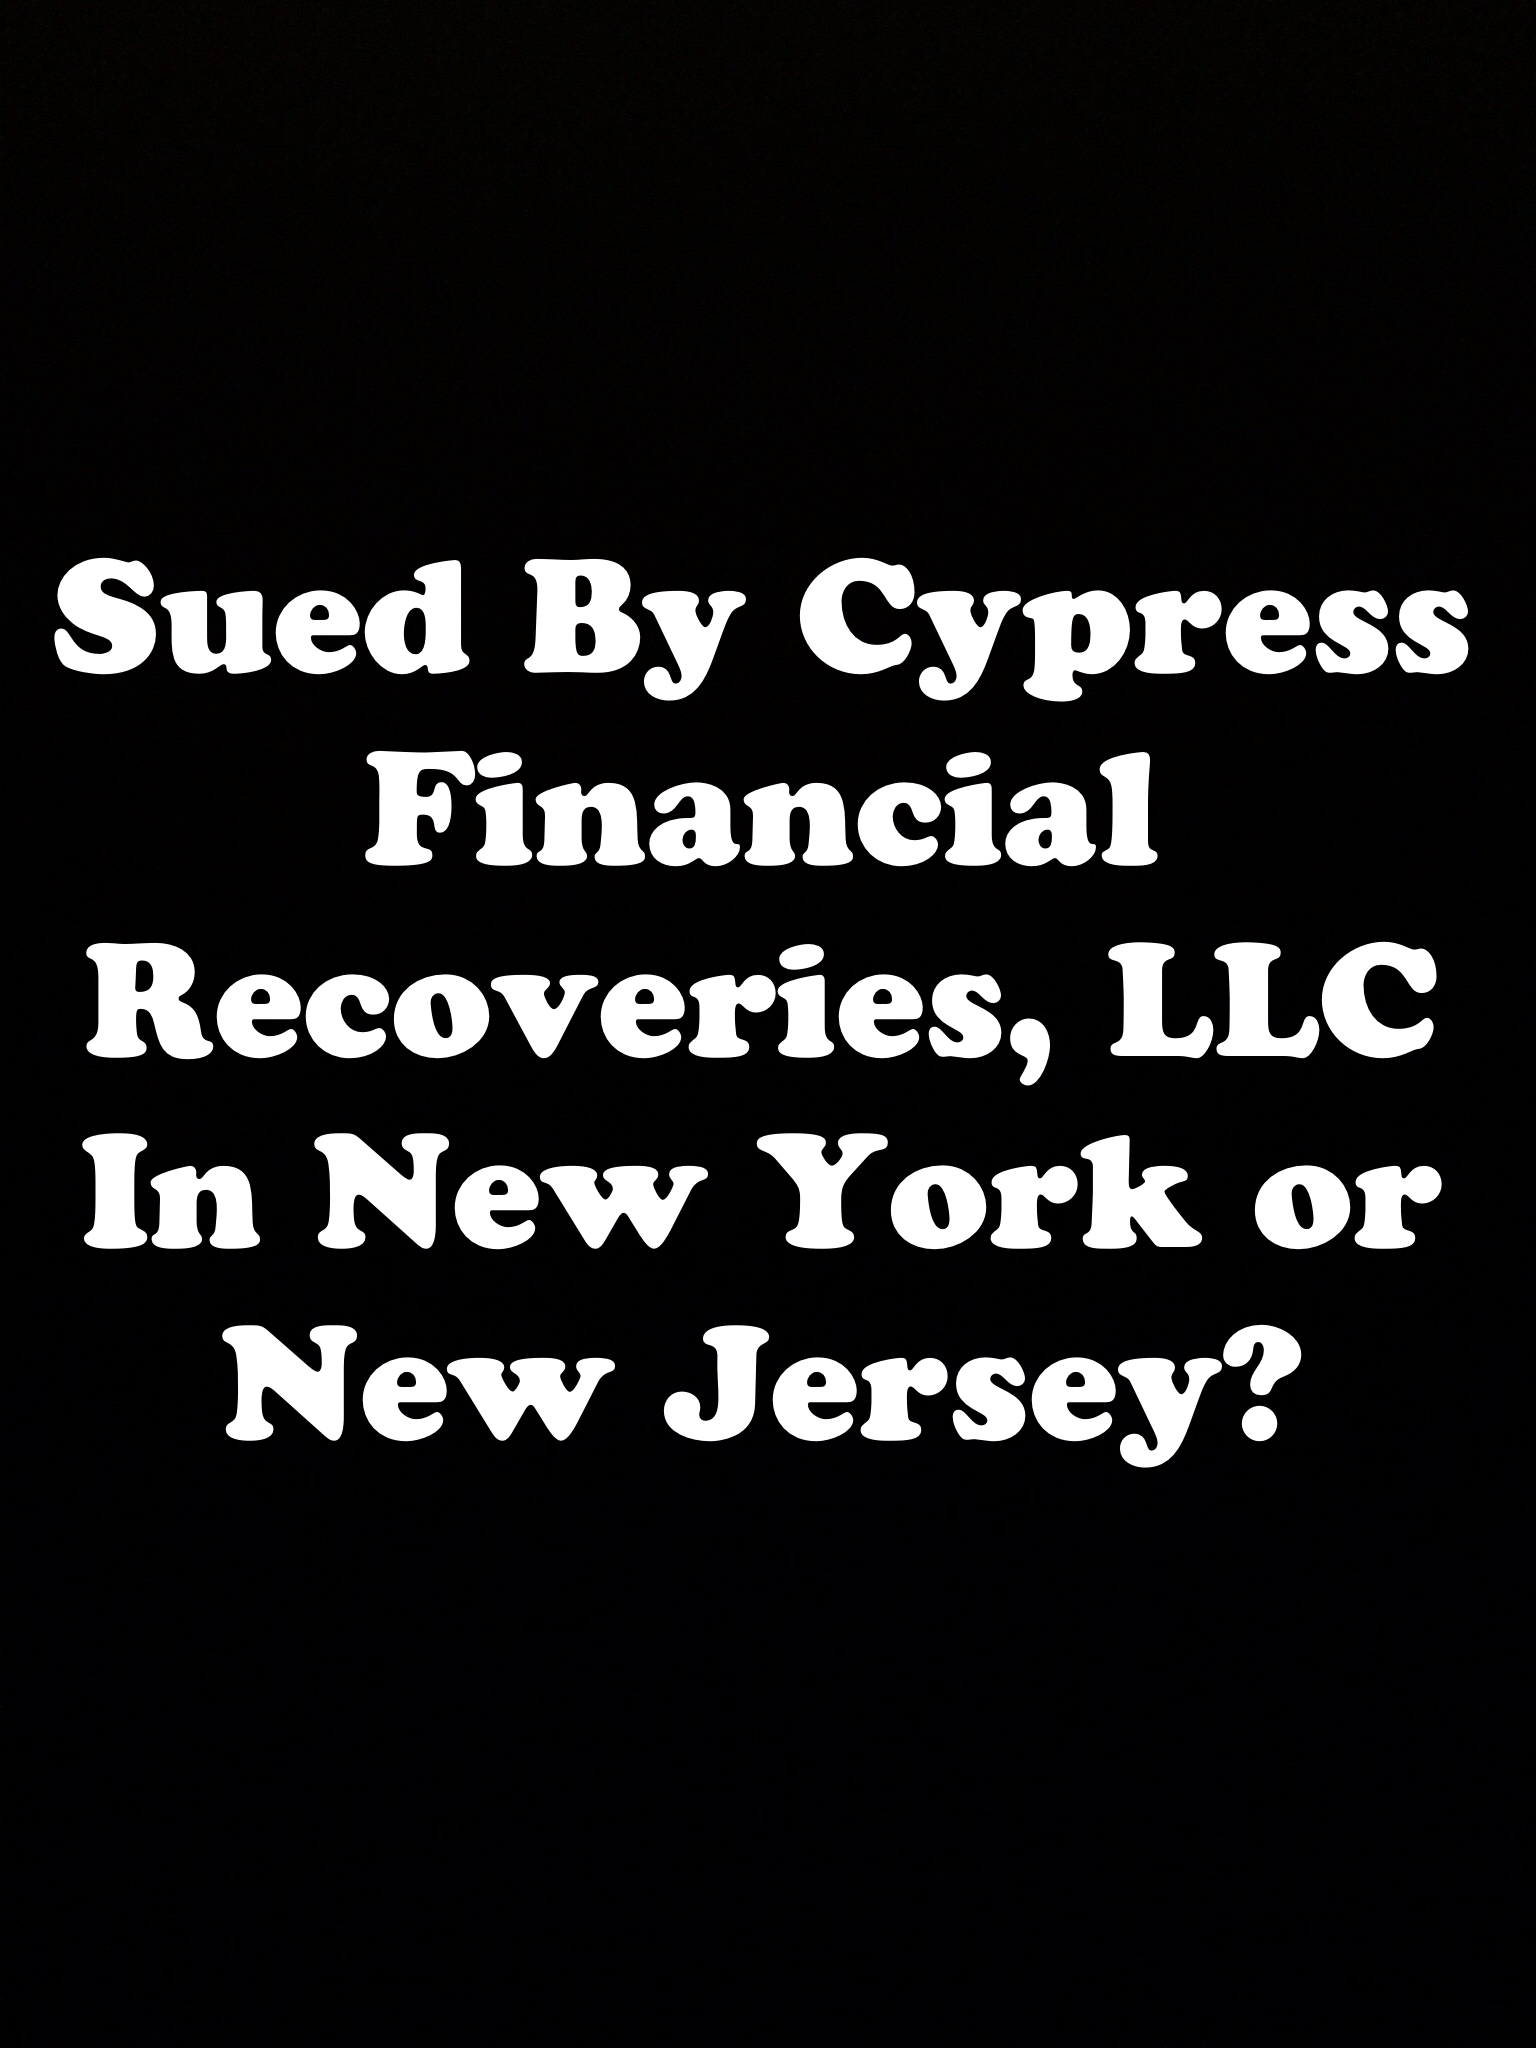 sued by cypress financial recoveries llc in new york or new jersey